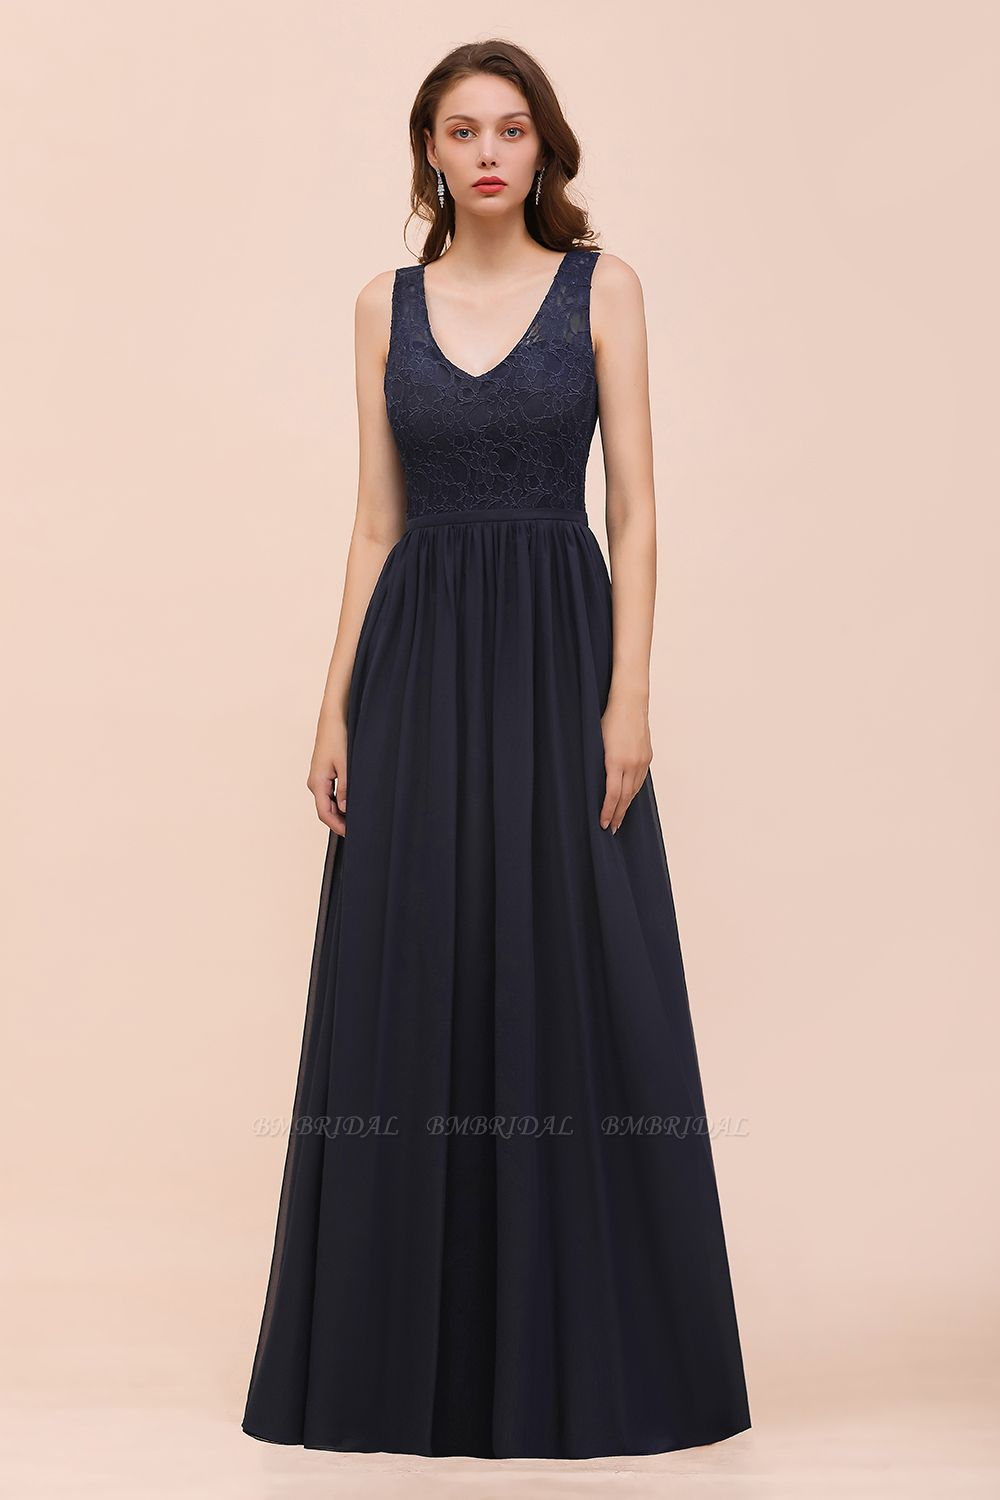 Affordable Lace V-Neck Navy Bridesmaid Dress with Open Back